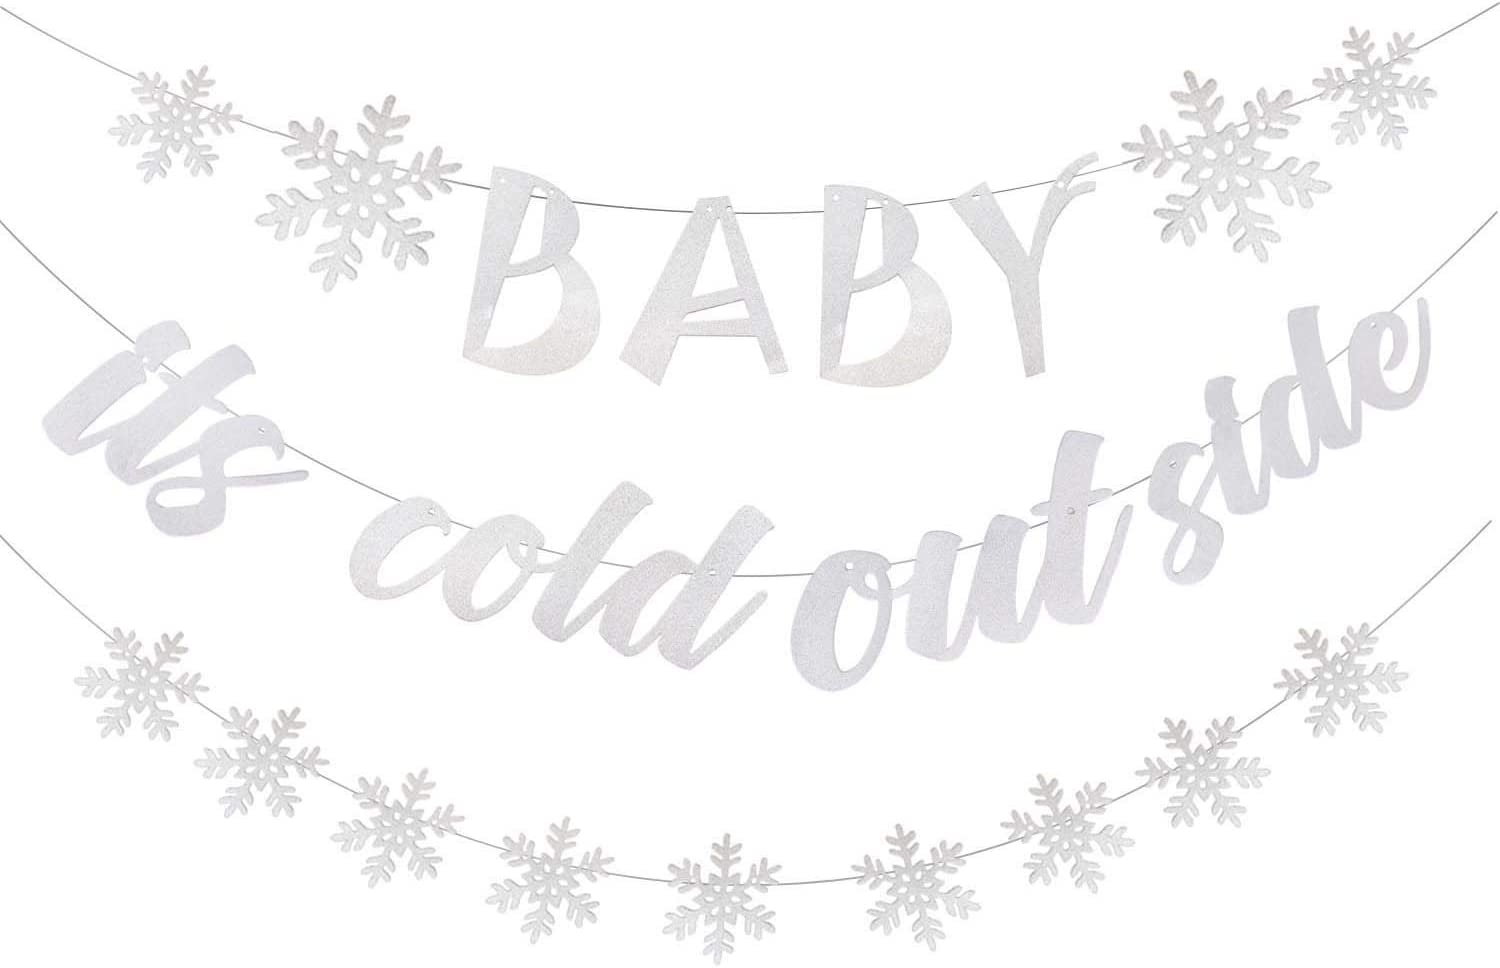 3 Pack Silver Glittery Baby It's Cold Outside Winter Snowflake Banner Garland - Winter Christmas Holiday Theme Party Decoration for Baby Shower Kids Birthday Party Decor Fireplace Wall Decorations